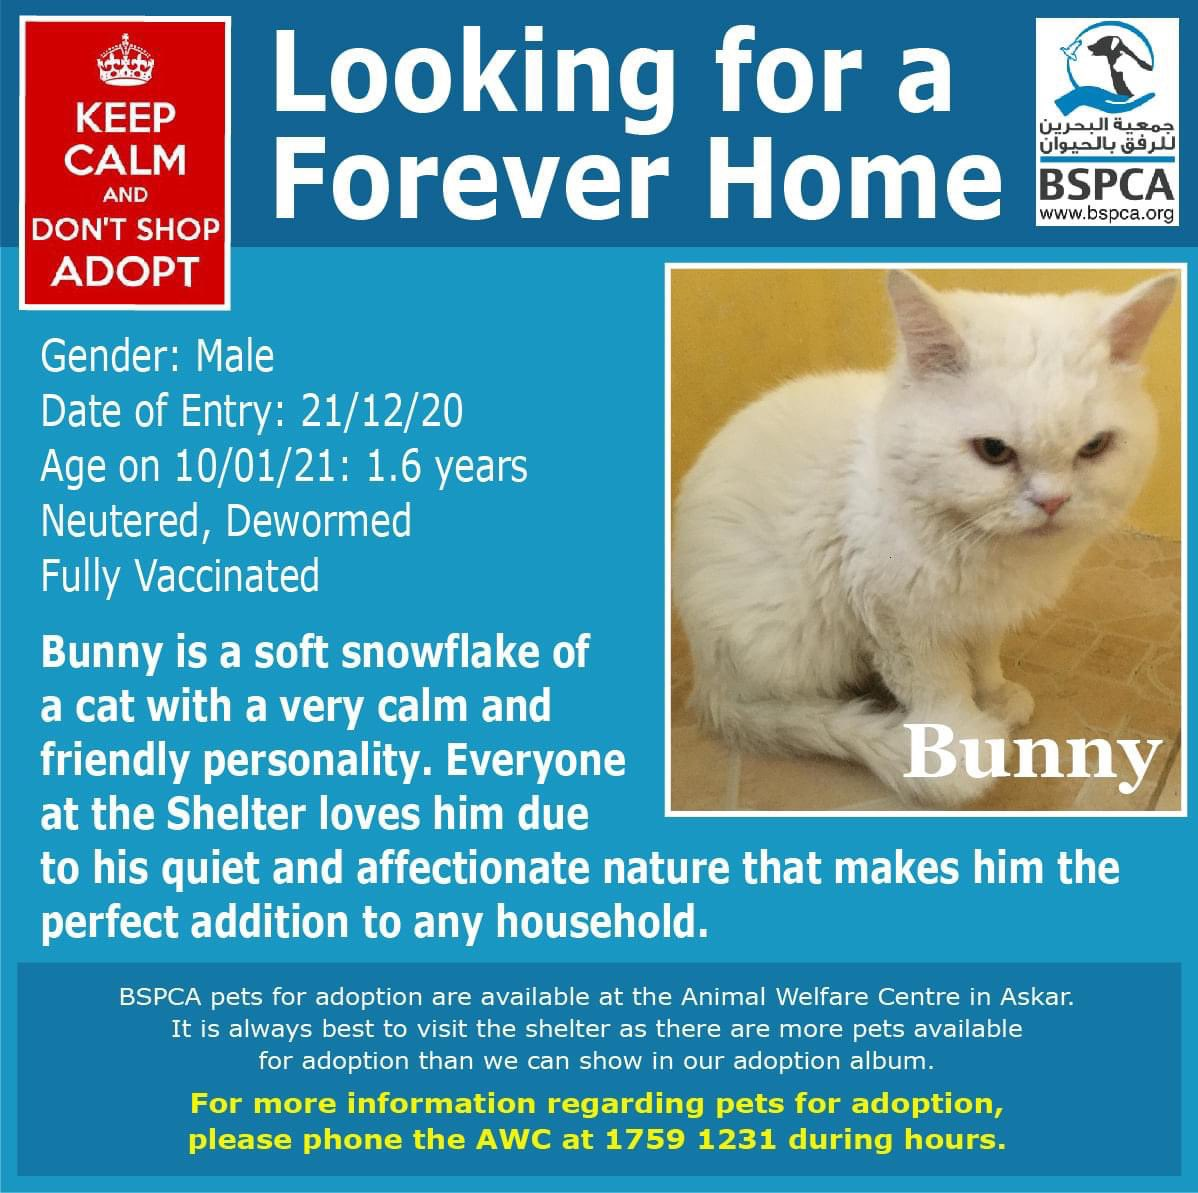 Bunny, not to be confused with our bunny rabbits, is a beautiful silky snowy young catto 😻  Bunny is quiet and affectionate and would make the purrrfect pet ❤️  Tel: 17591231  #Bahrain #Adopt #AnimalWelfare #dogs #cats #charity #spca #donate #BenefitPay #rescue #spca #volunteer